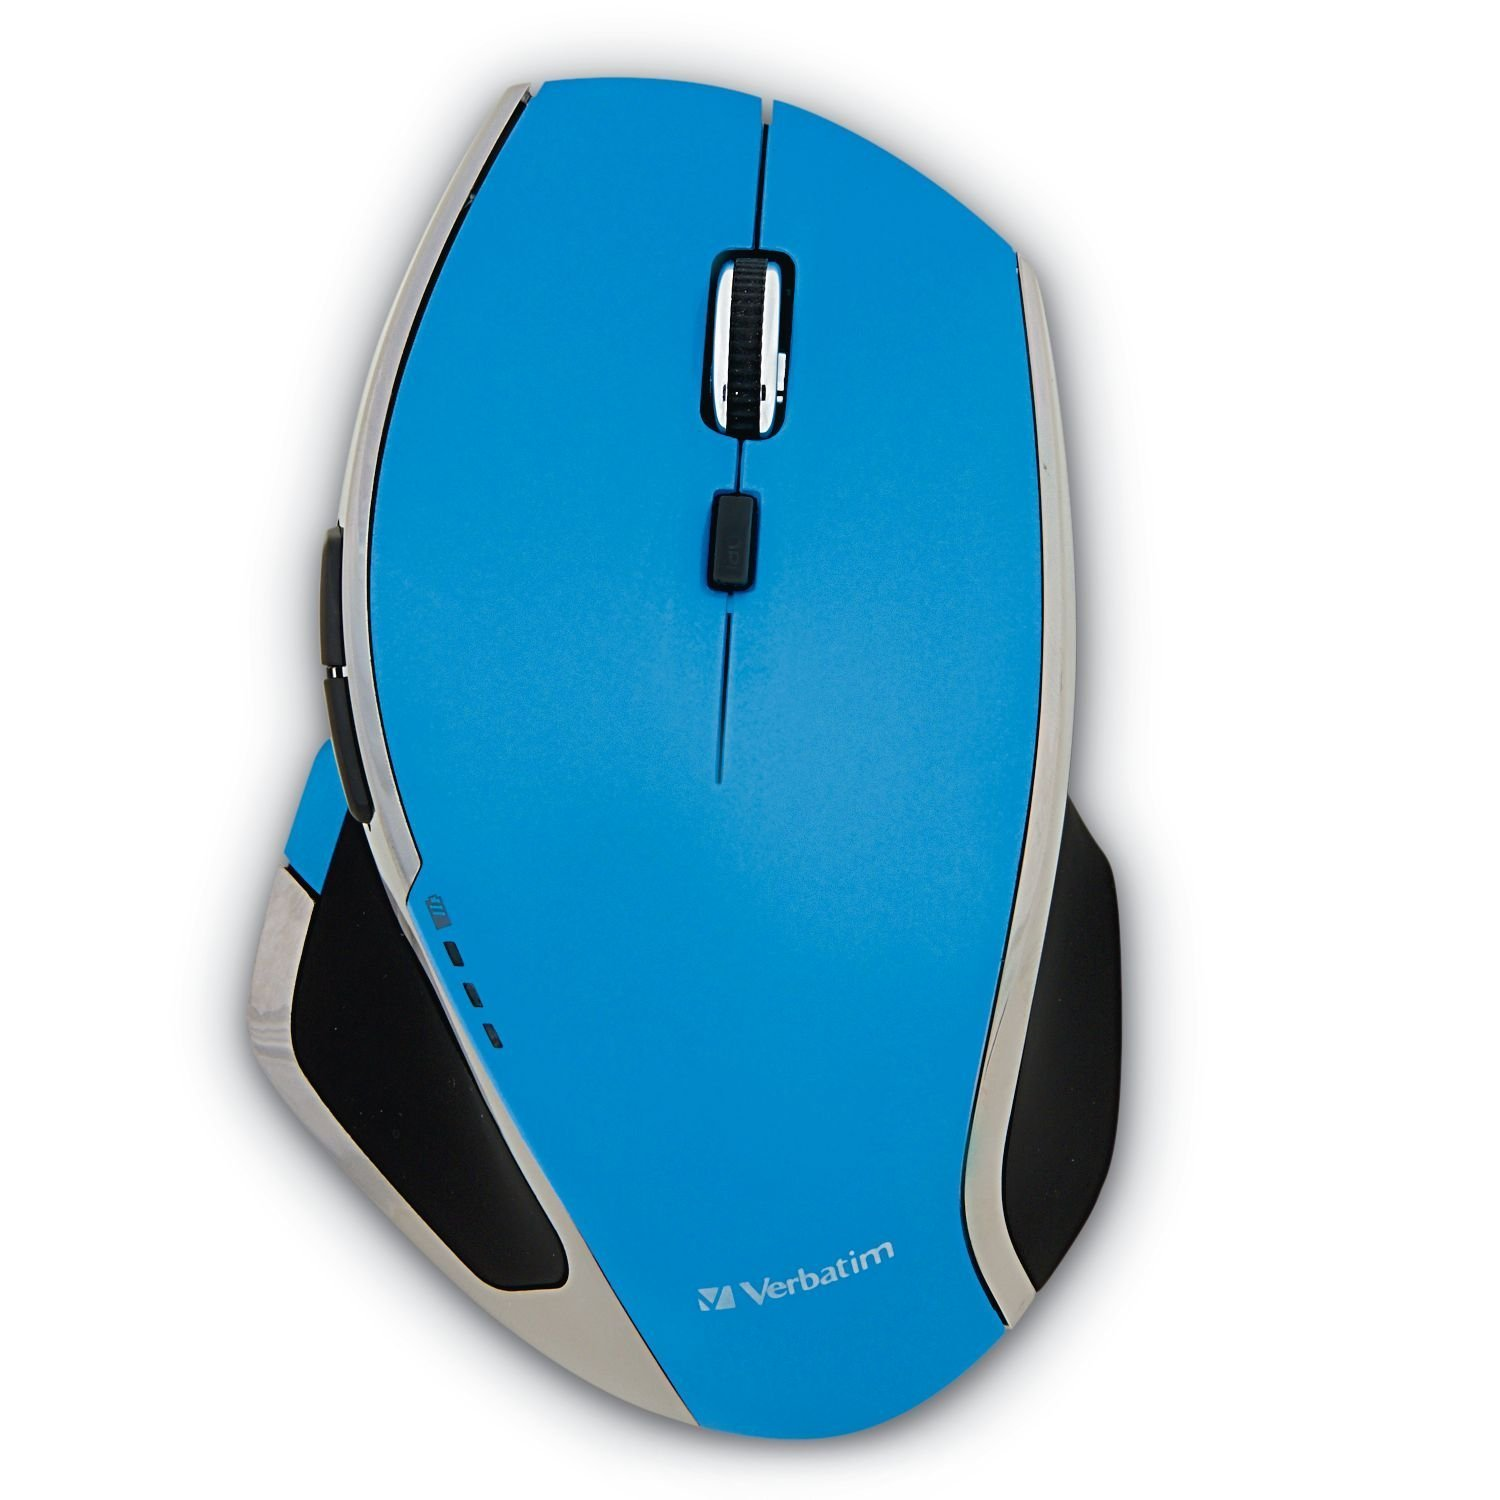 Led Gaming Mouse, Blue 8-button Portable Usb Ergonomic 2.4ghz Wireless Mouse